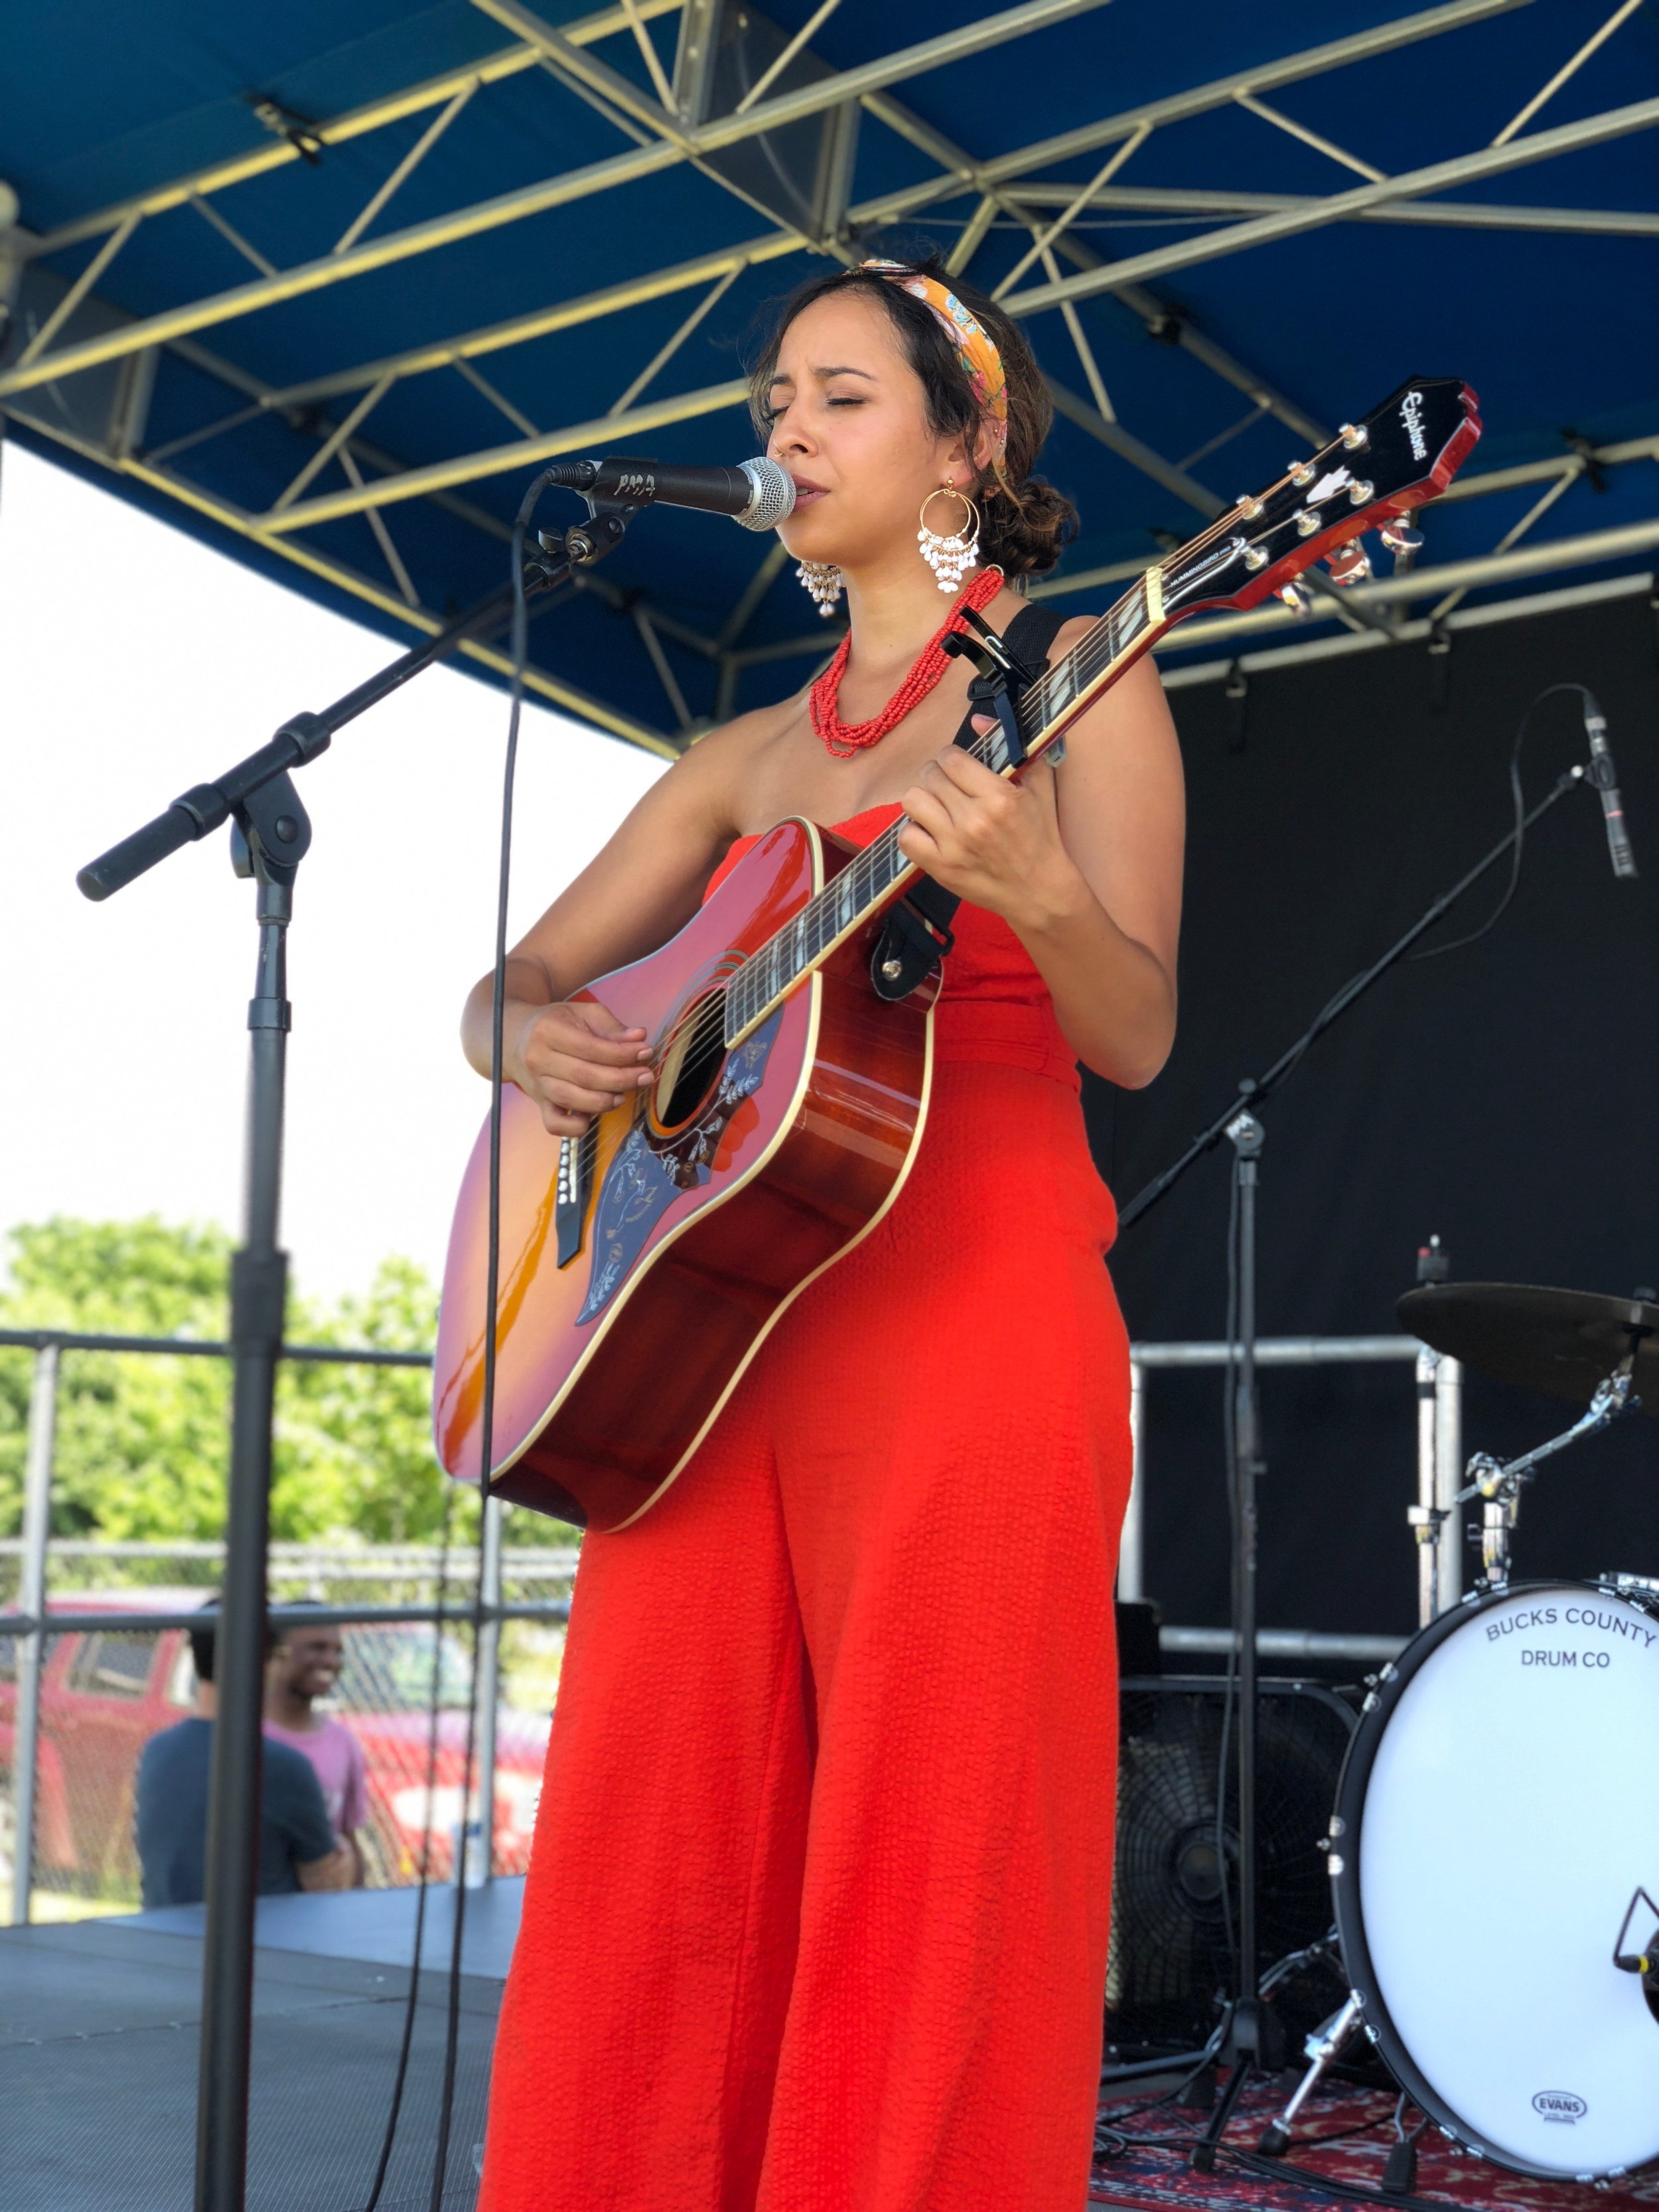 Guitar Girl Magazine - Covers Karina Daza in the line-up for the 2018